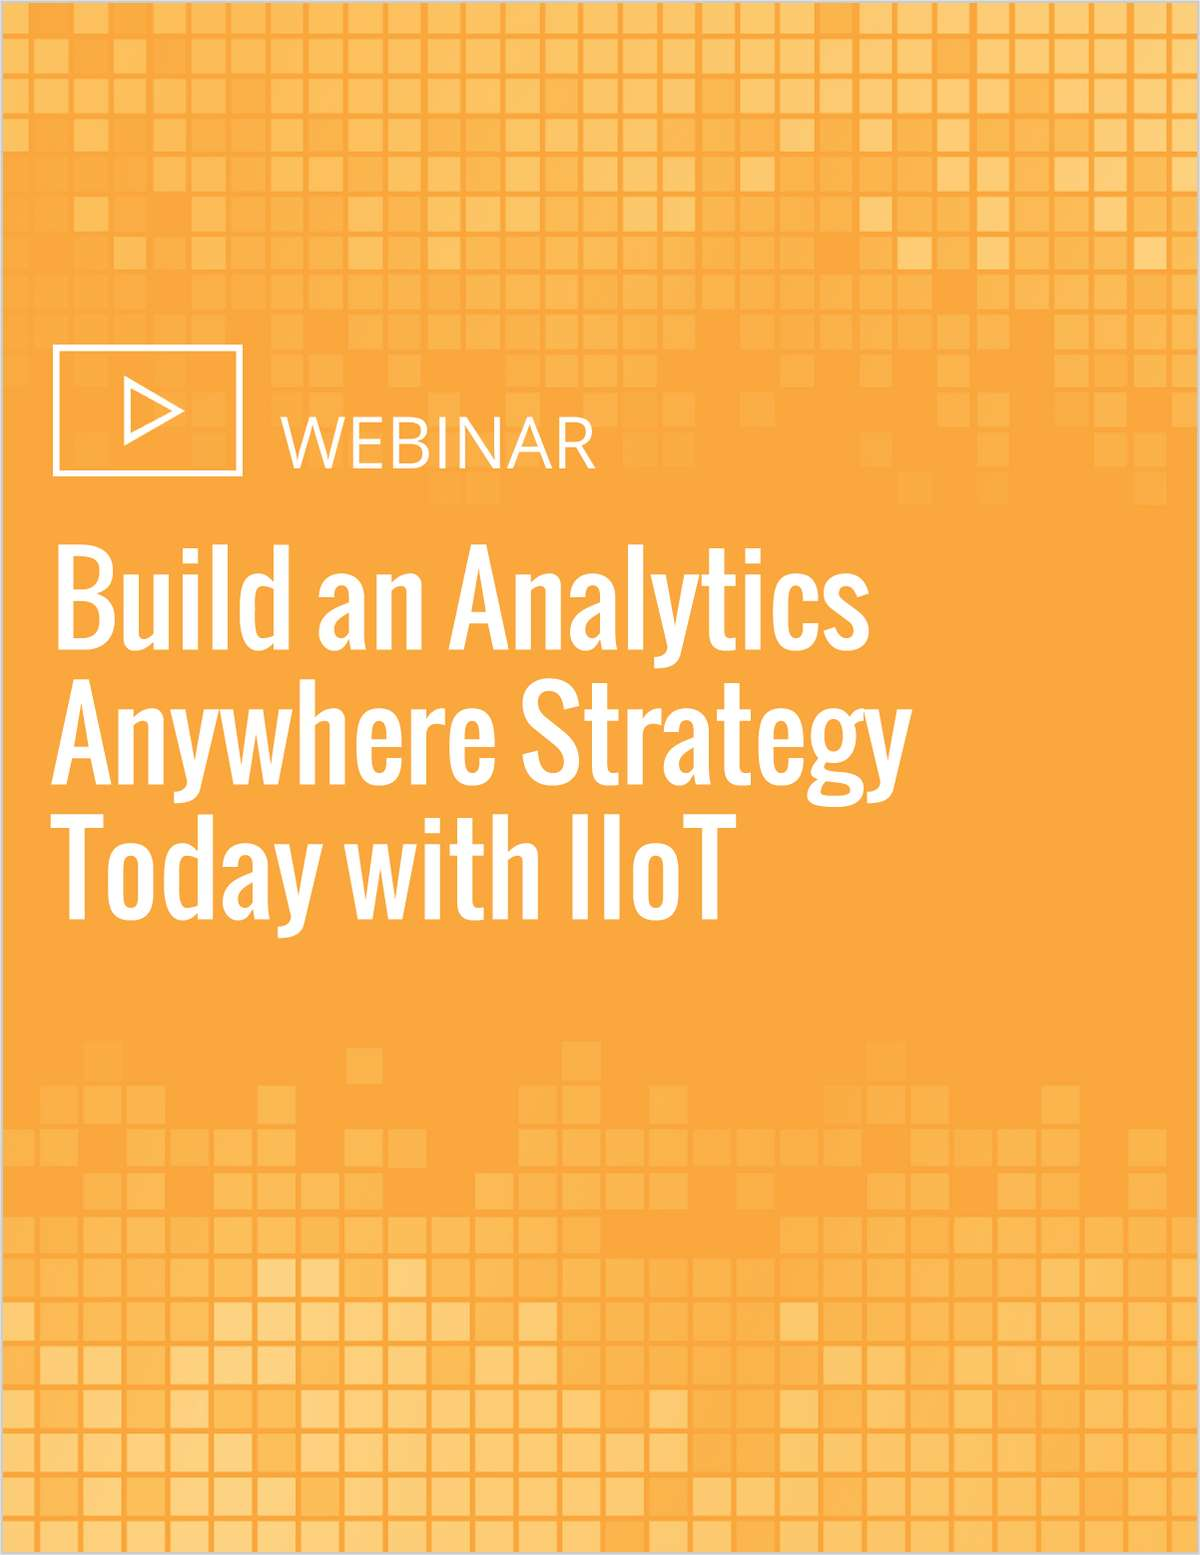 Build an Analytics Anywhere Strategy Today with IIoT